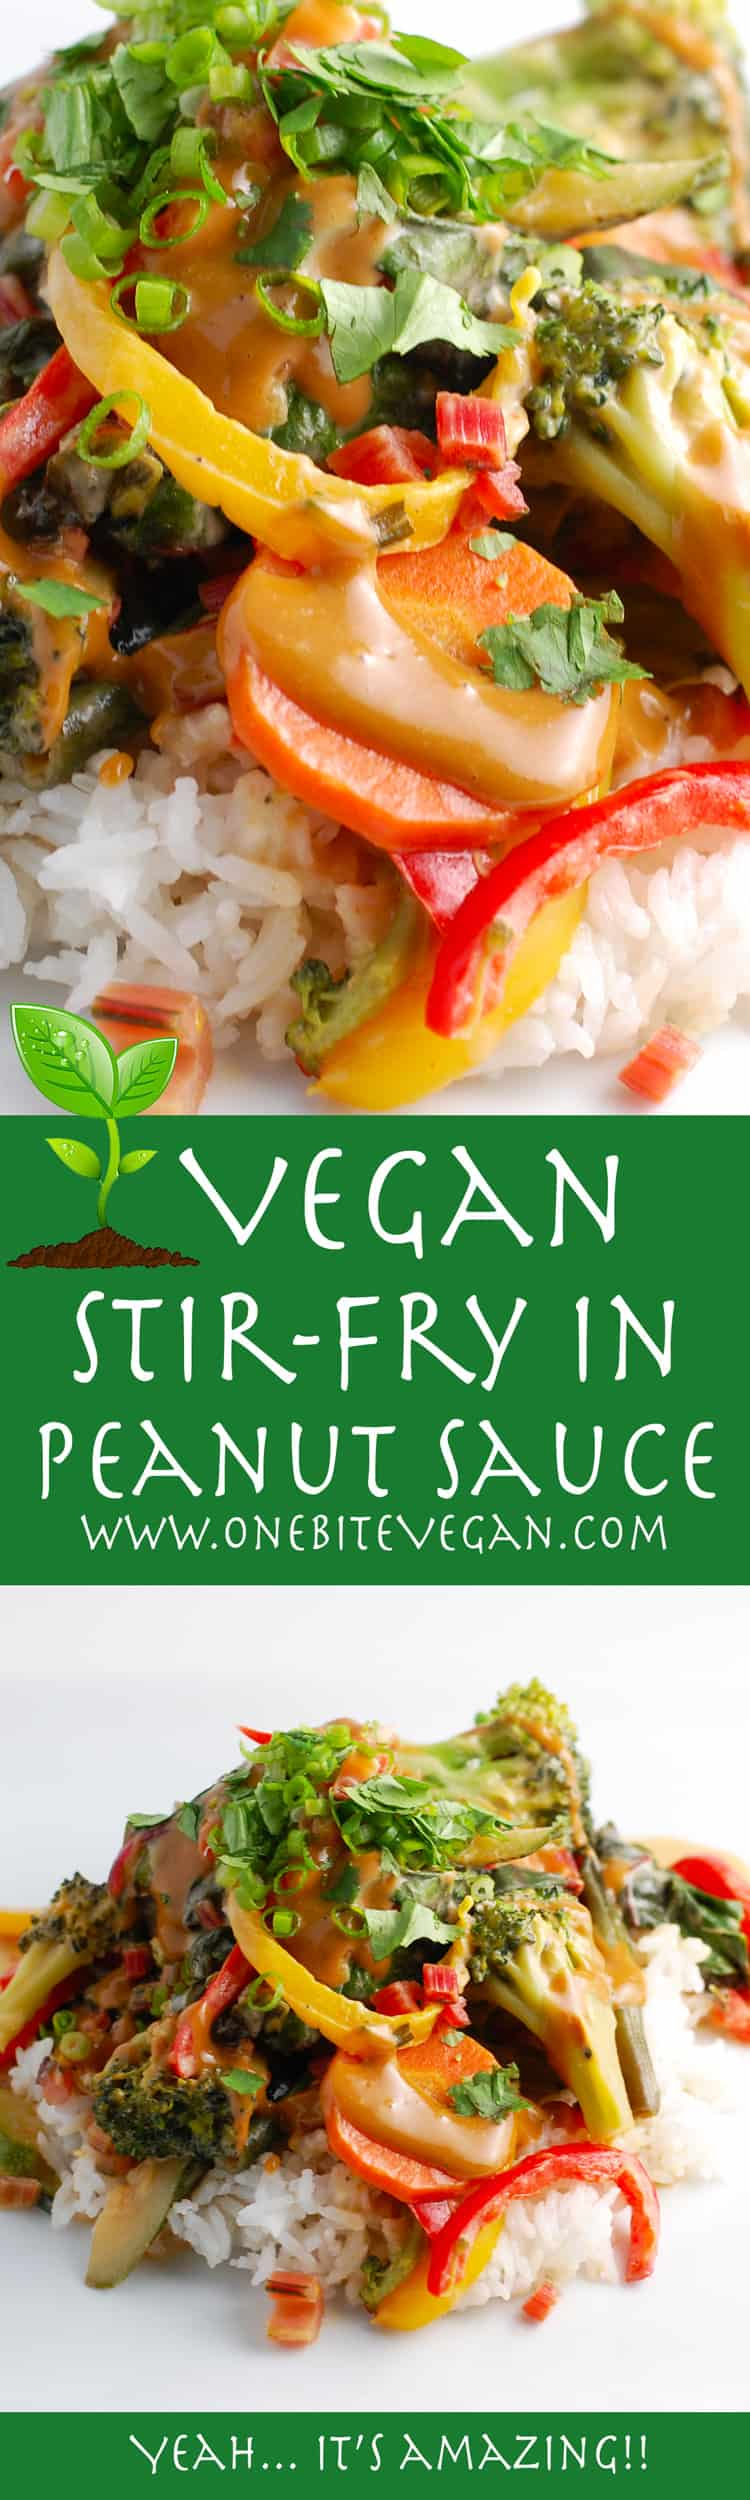 Vegan stir-fry veggies in peanut sauce. Fresh vegetables are stir-fried and then drizzled with a sauce made from coconut milk and vegan peanut sauce.